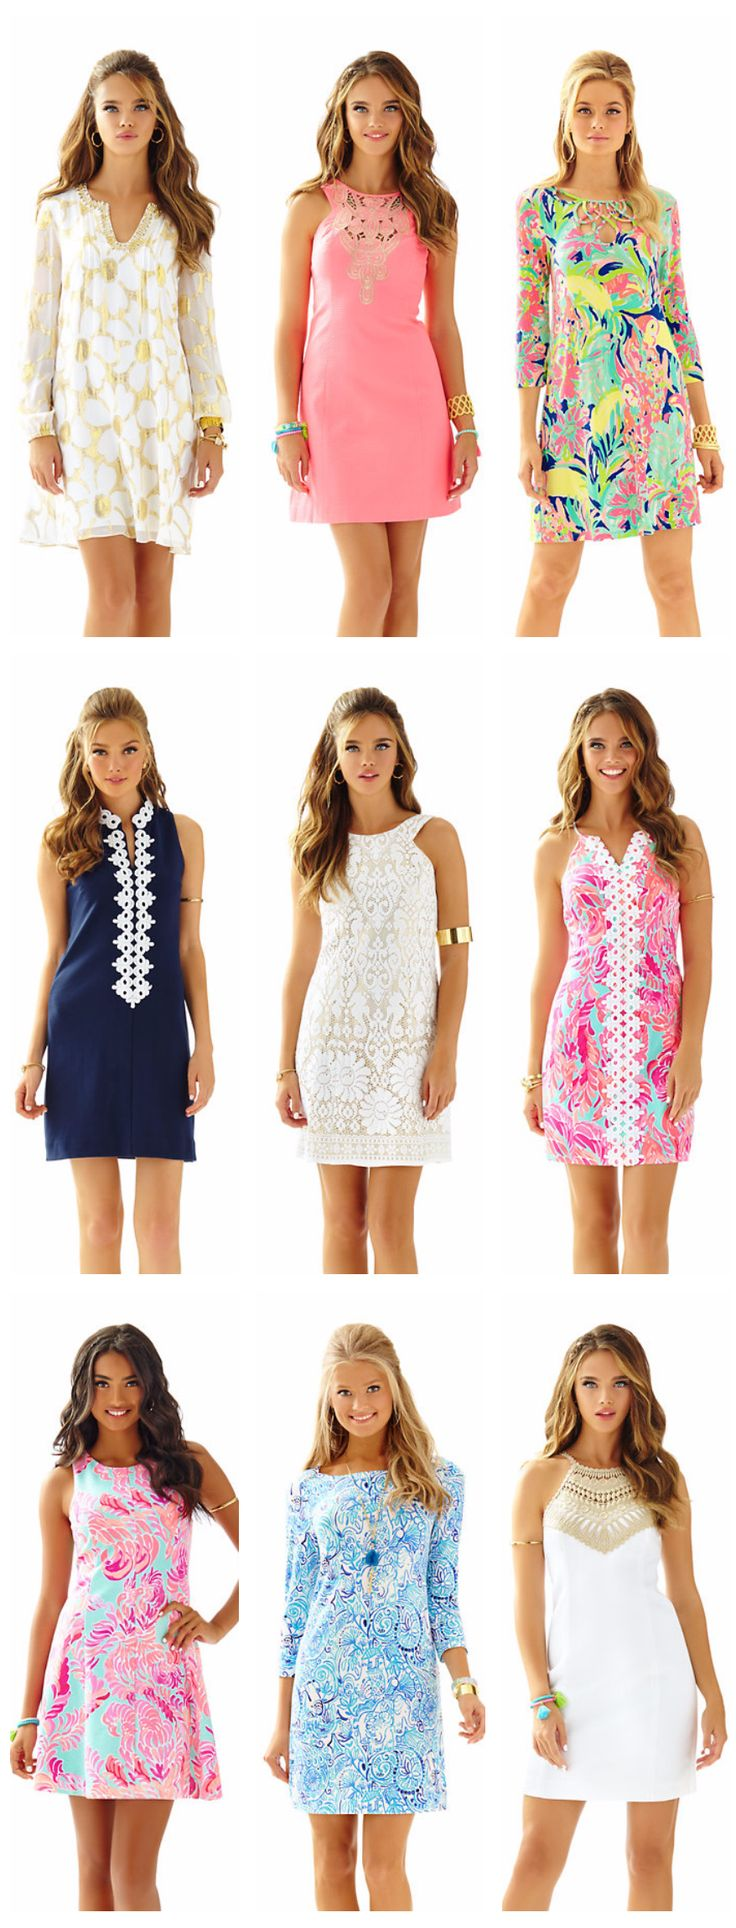 Lilly Pulitzer, go ahead and take all of my money! I want every single piece from the new collection!